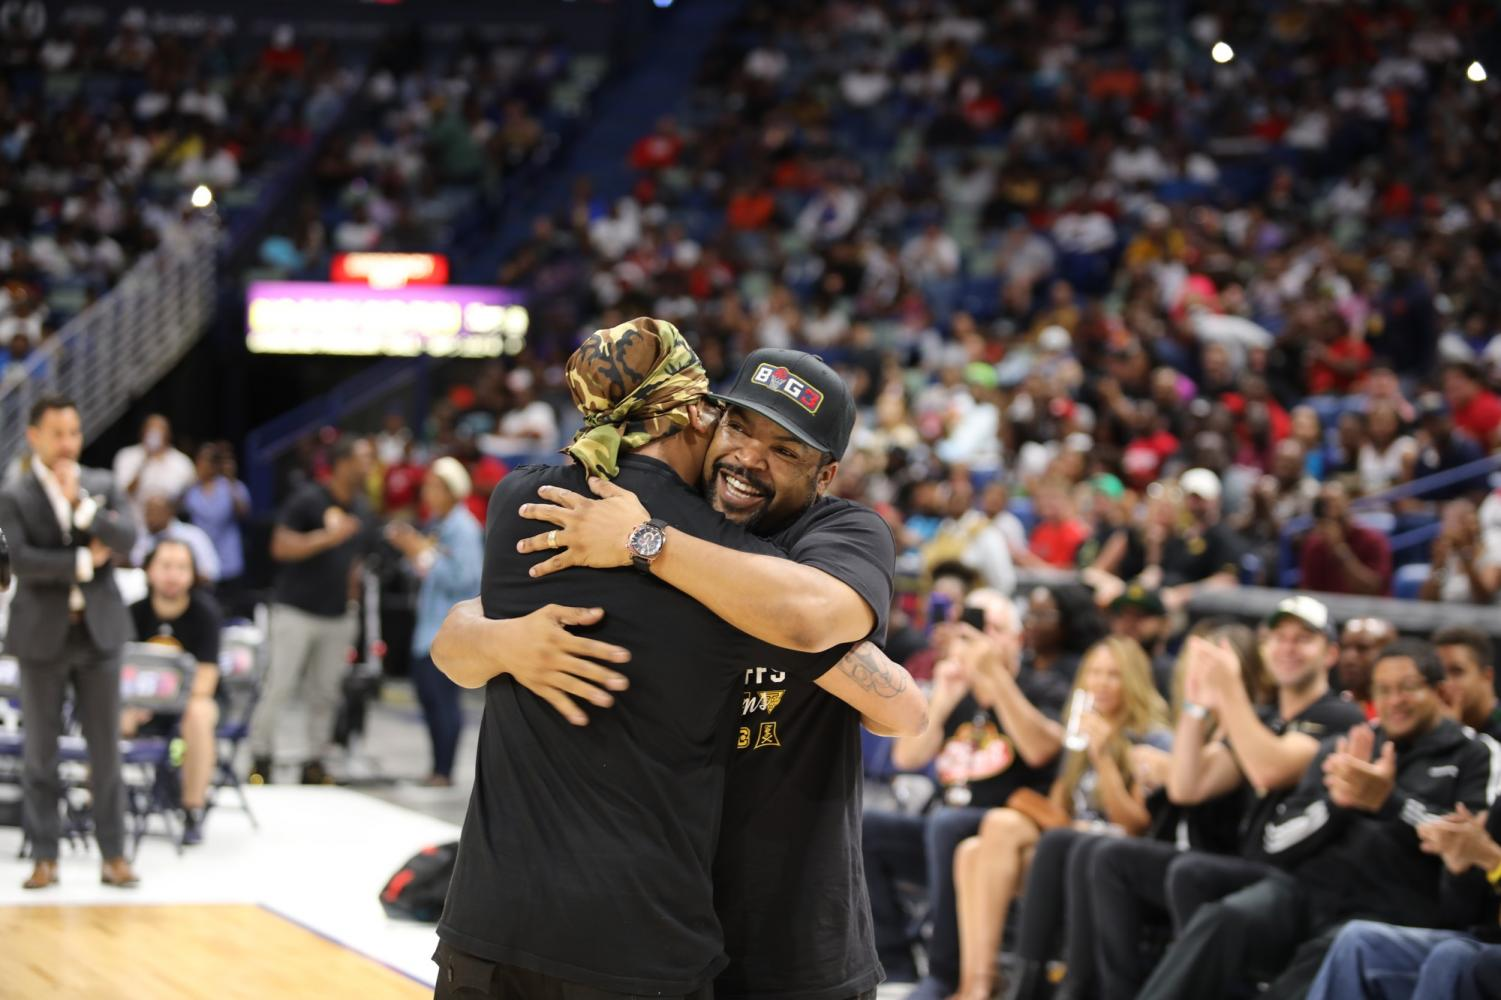 BIG3+founder+Ice+Cube+embraces+New+Orleans+rapper+Juvenile+at+the+BIG3+playoffs+on+August+25%2C+2019.+Celebrities+sat+court+side+to+witness+the+first+BIG3+games+in+New+Orleans.+Photo+credit%3A+Andres+Fuentes